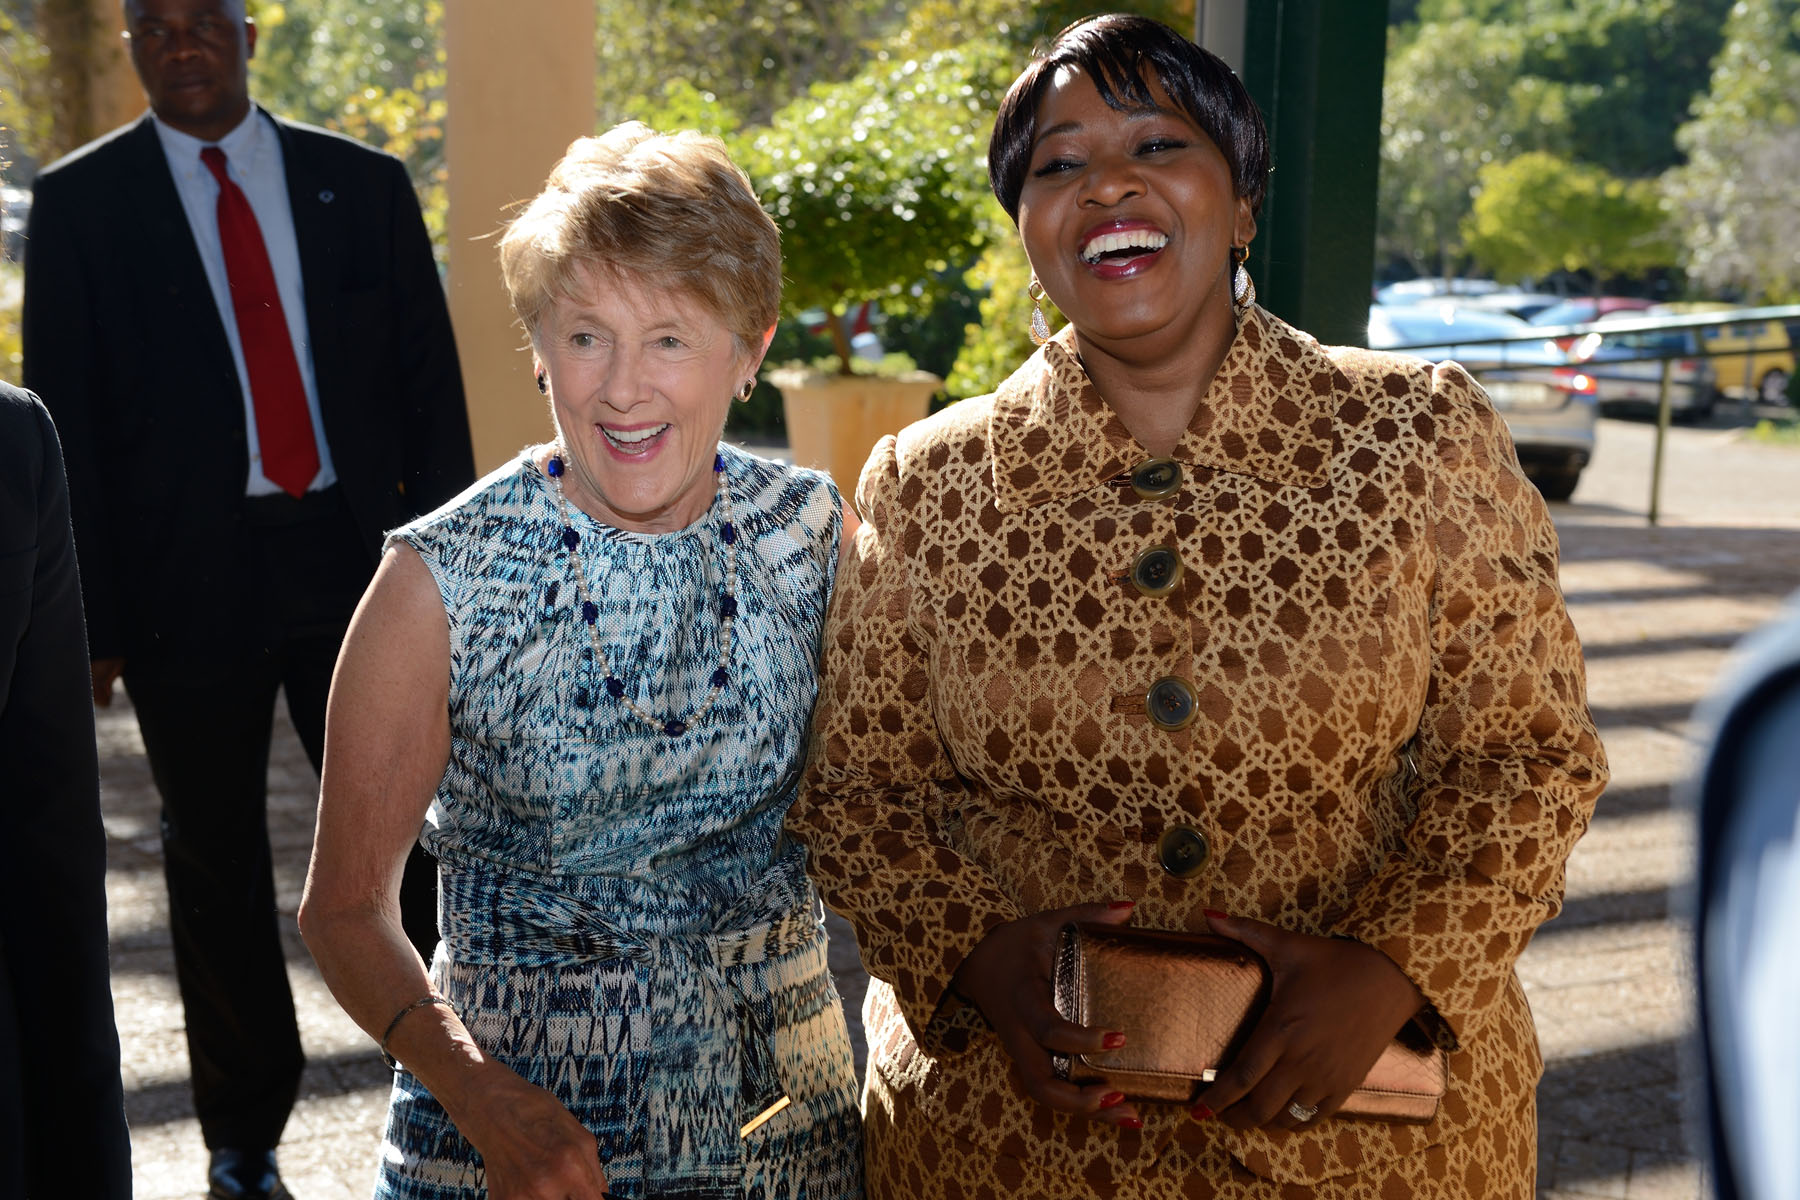 Her Excellency and Mrs. Bongi Ngema-Zuma visited the Kirstenbosch Botanical Gardens, which are dedicated to preserving the fynbos genus of plants. The genus is unique to the Western Cape, yet contains one of the greatest number of plant species in the world.